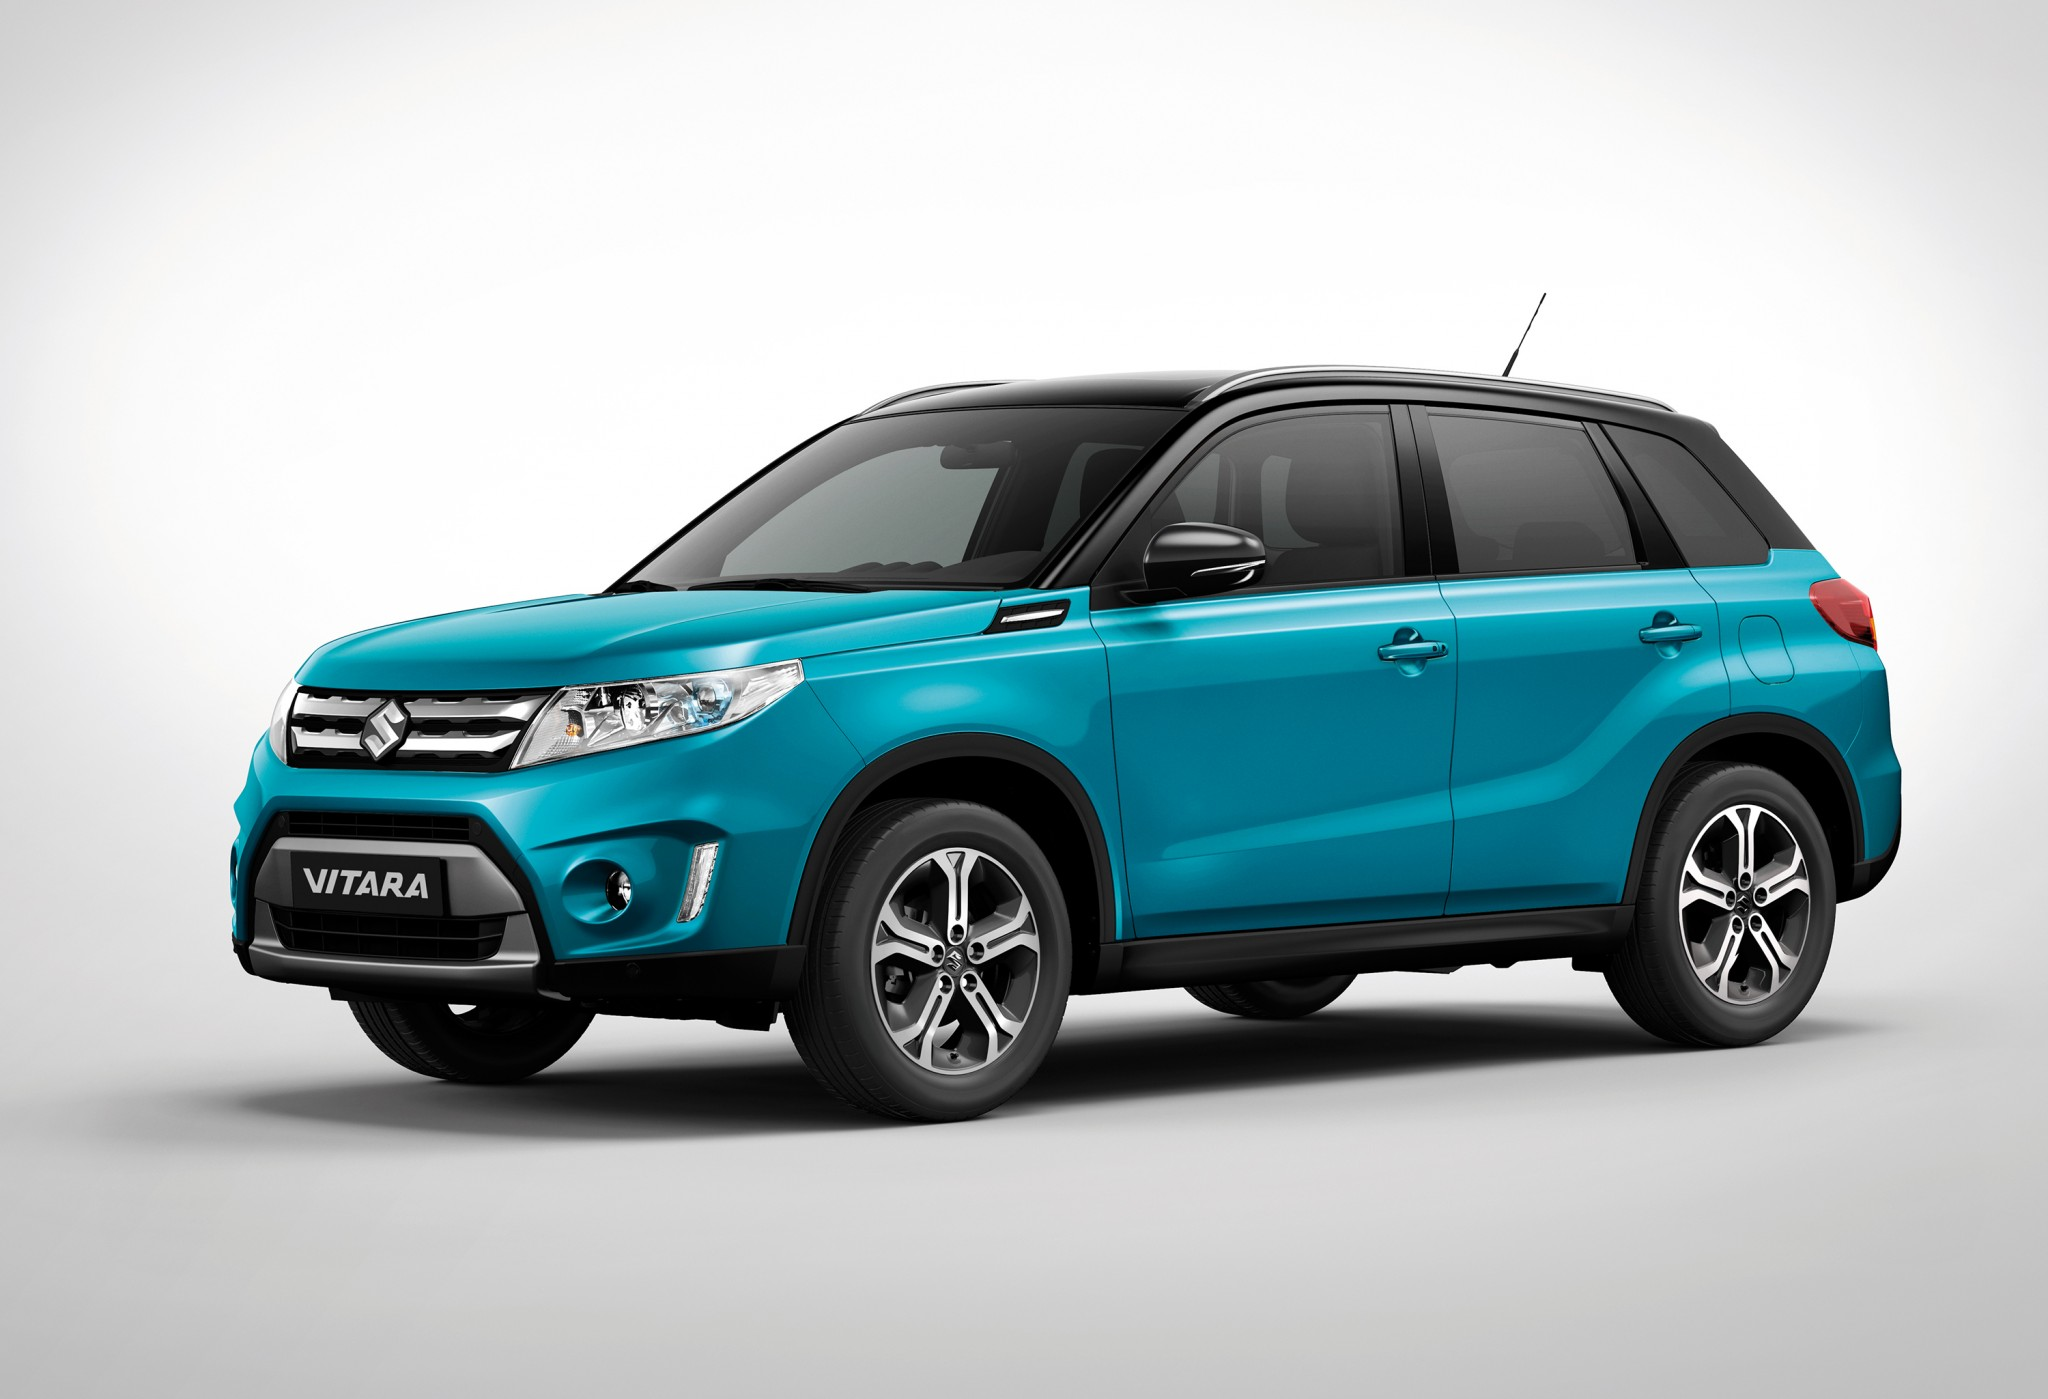 2016 Suzuki Vitara arrives in Australia | Practical Motoring